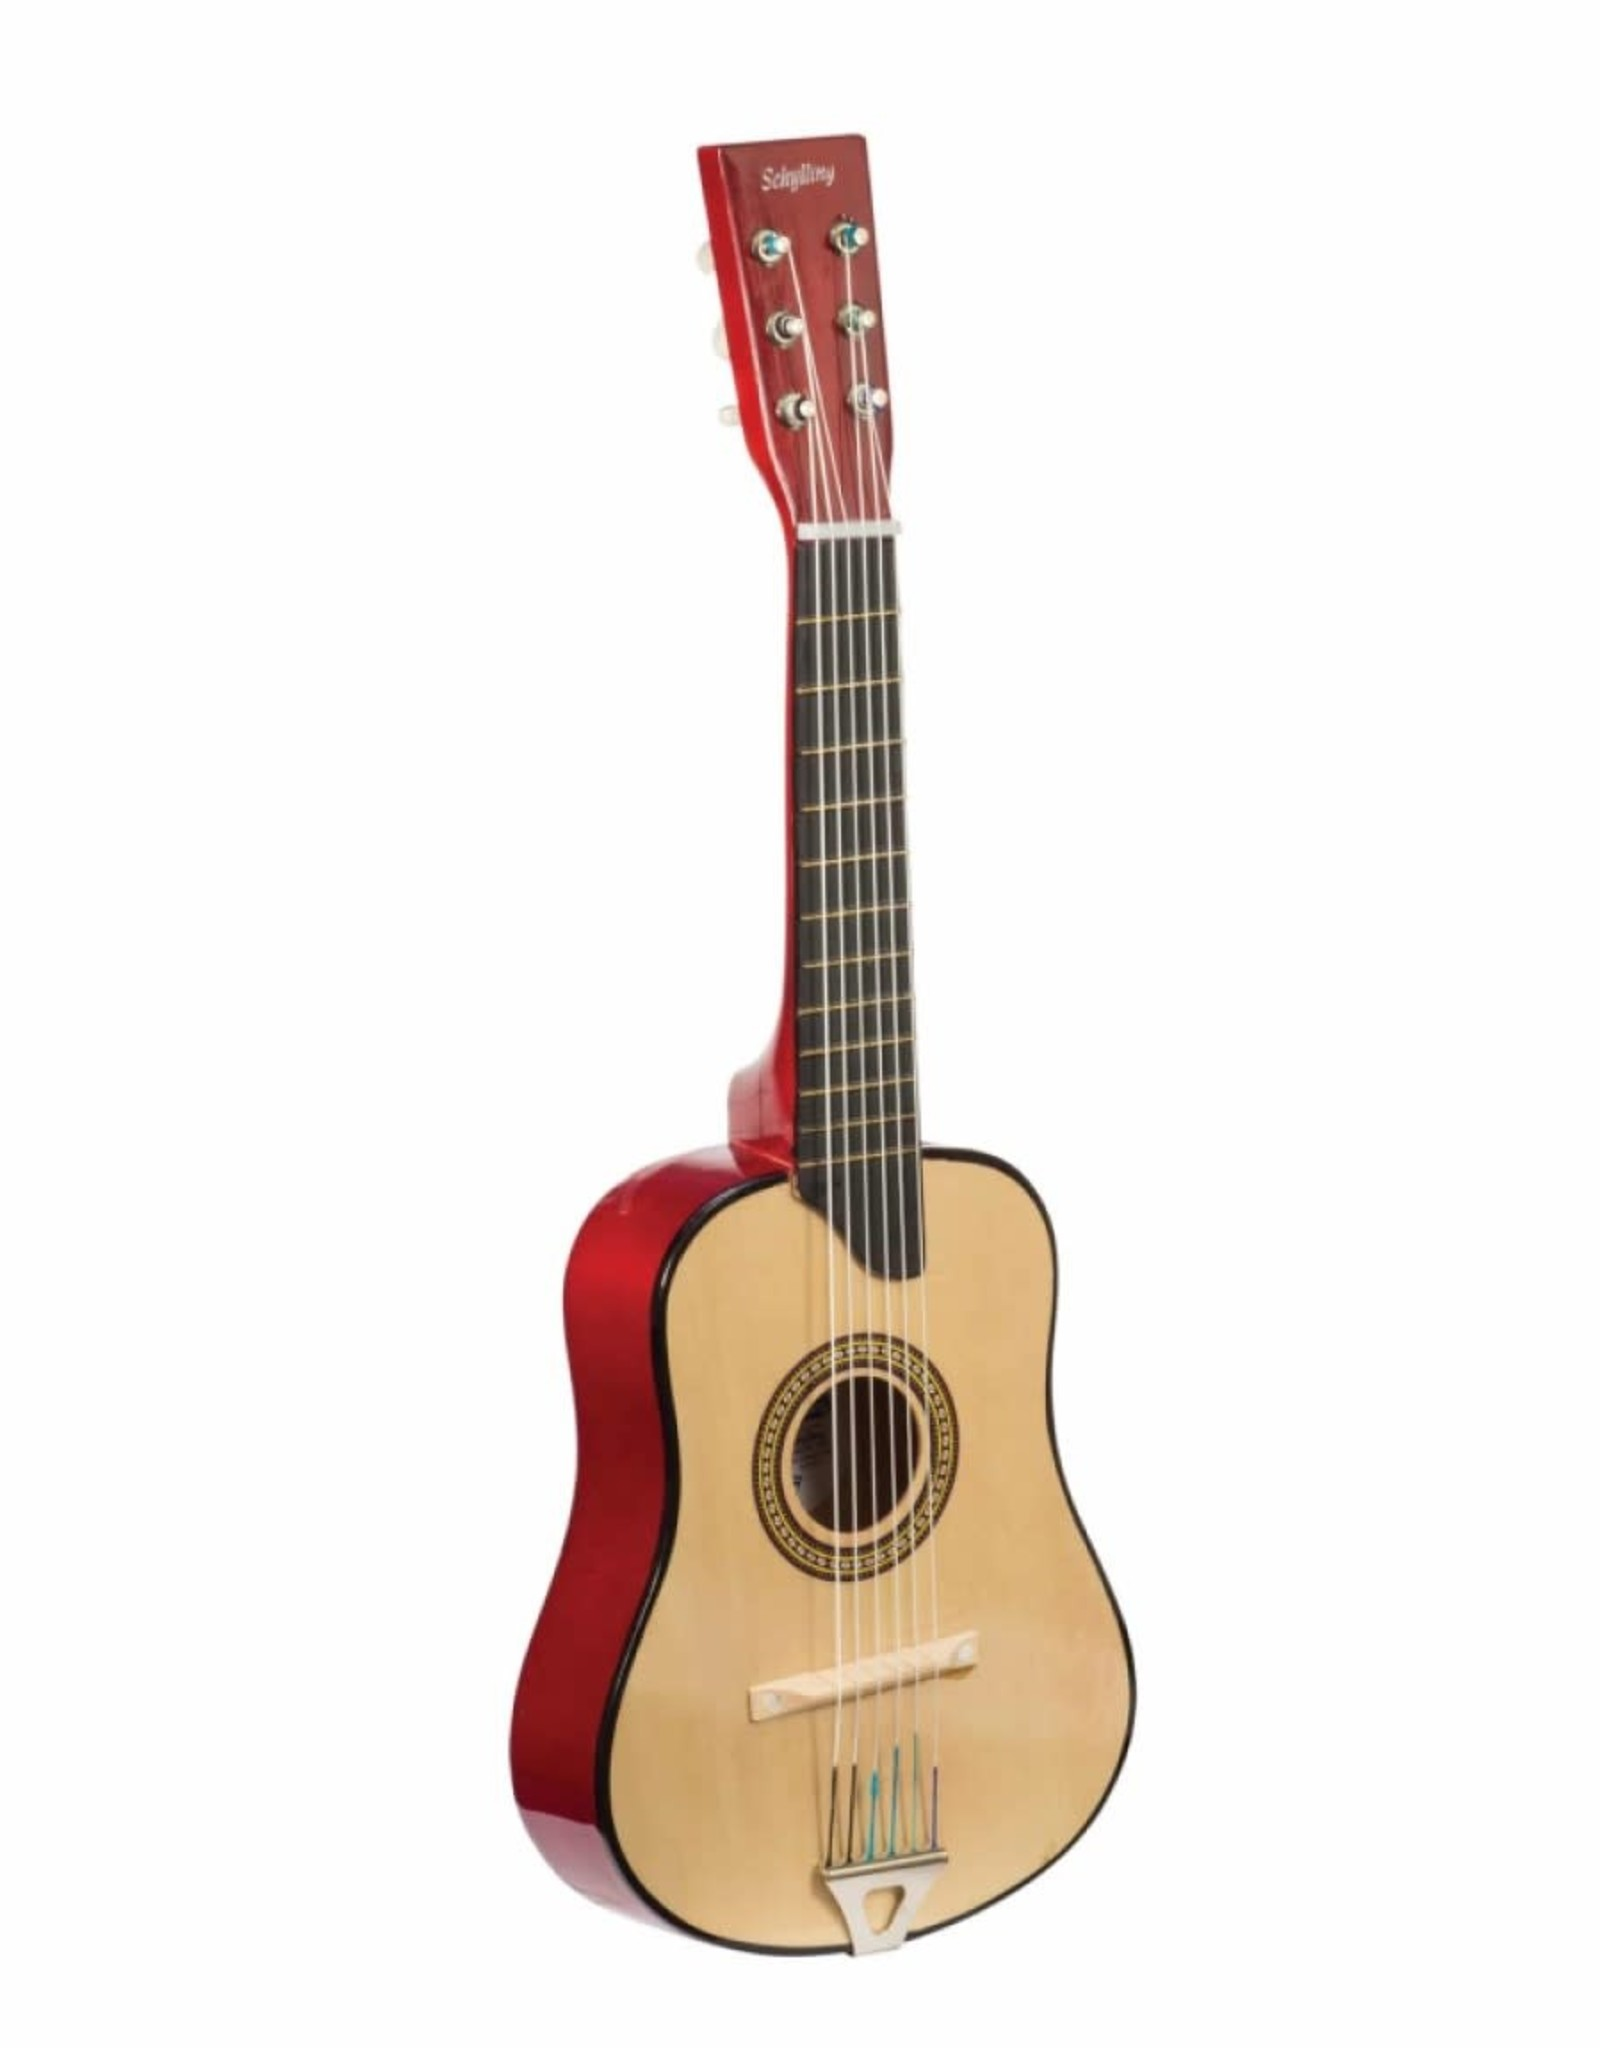 Schylling Classic Acoustic Guitar 6 String